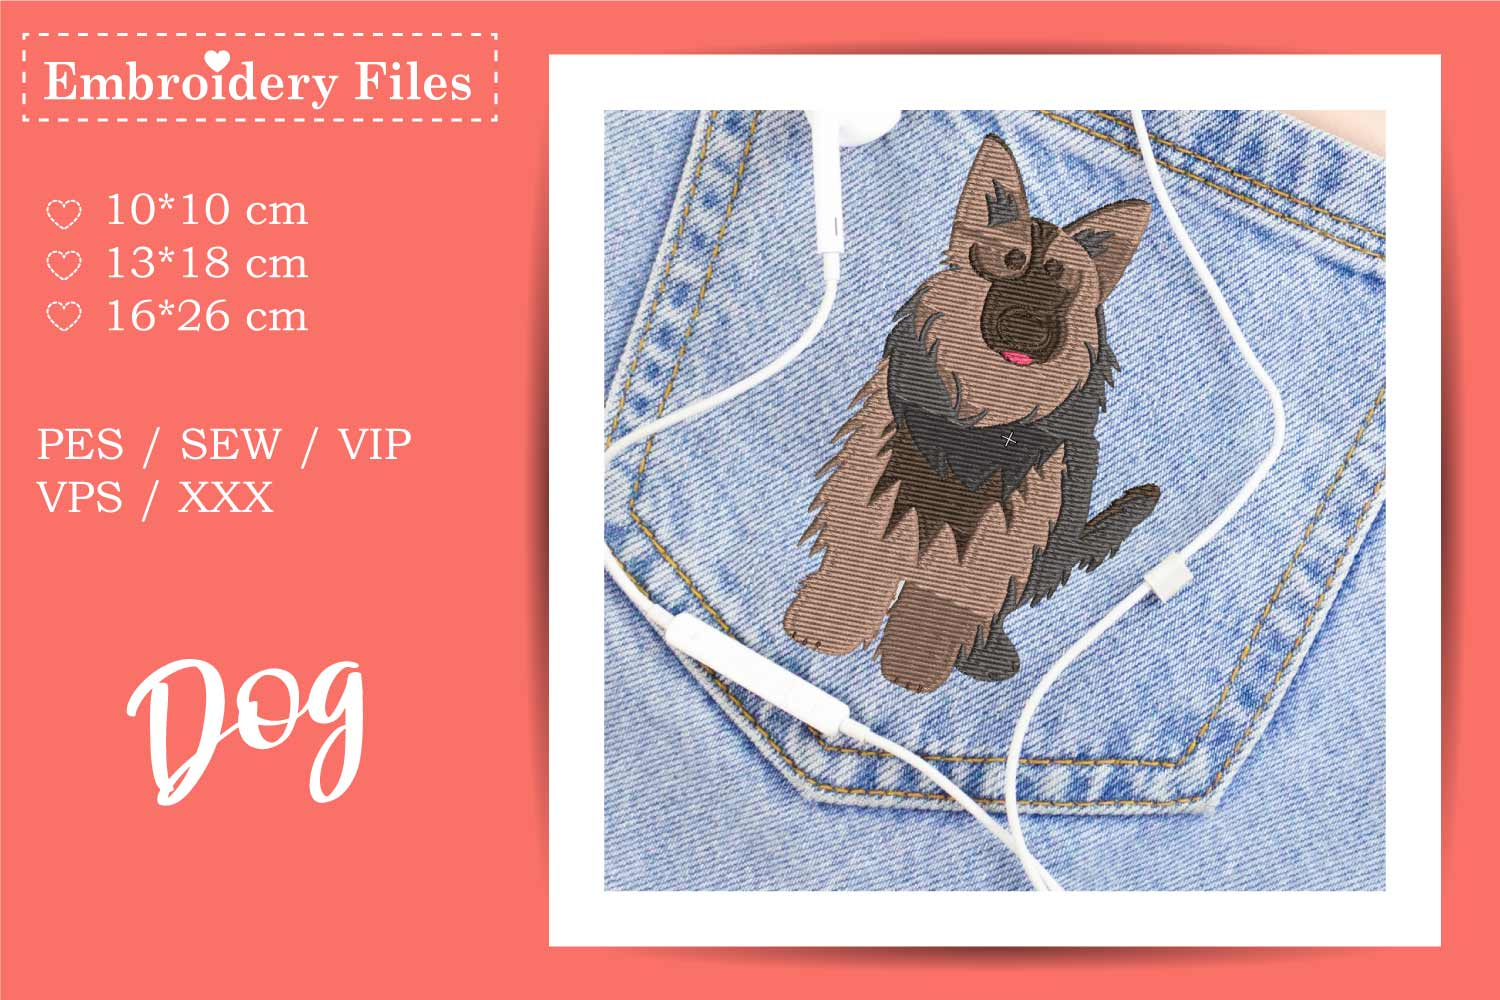 Dogs - Mini Bundle - Embroidery Files for Beginners example image 11